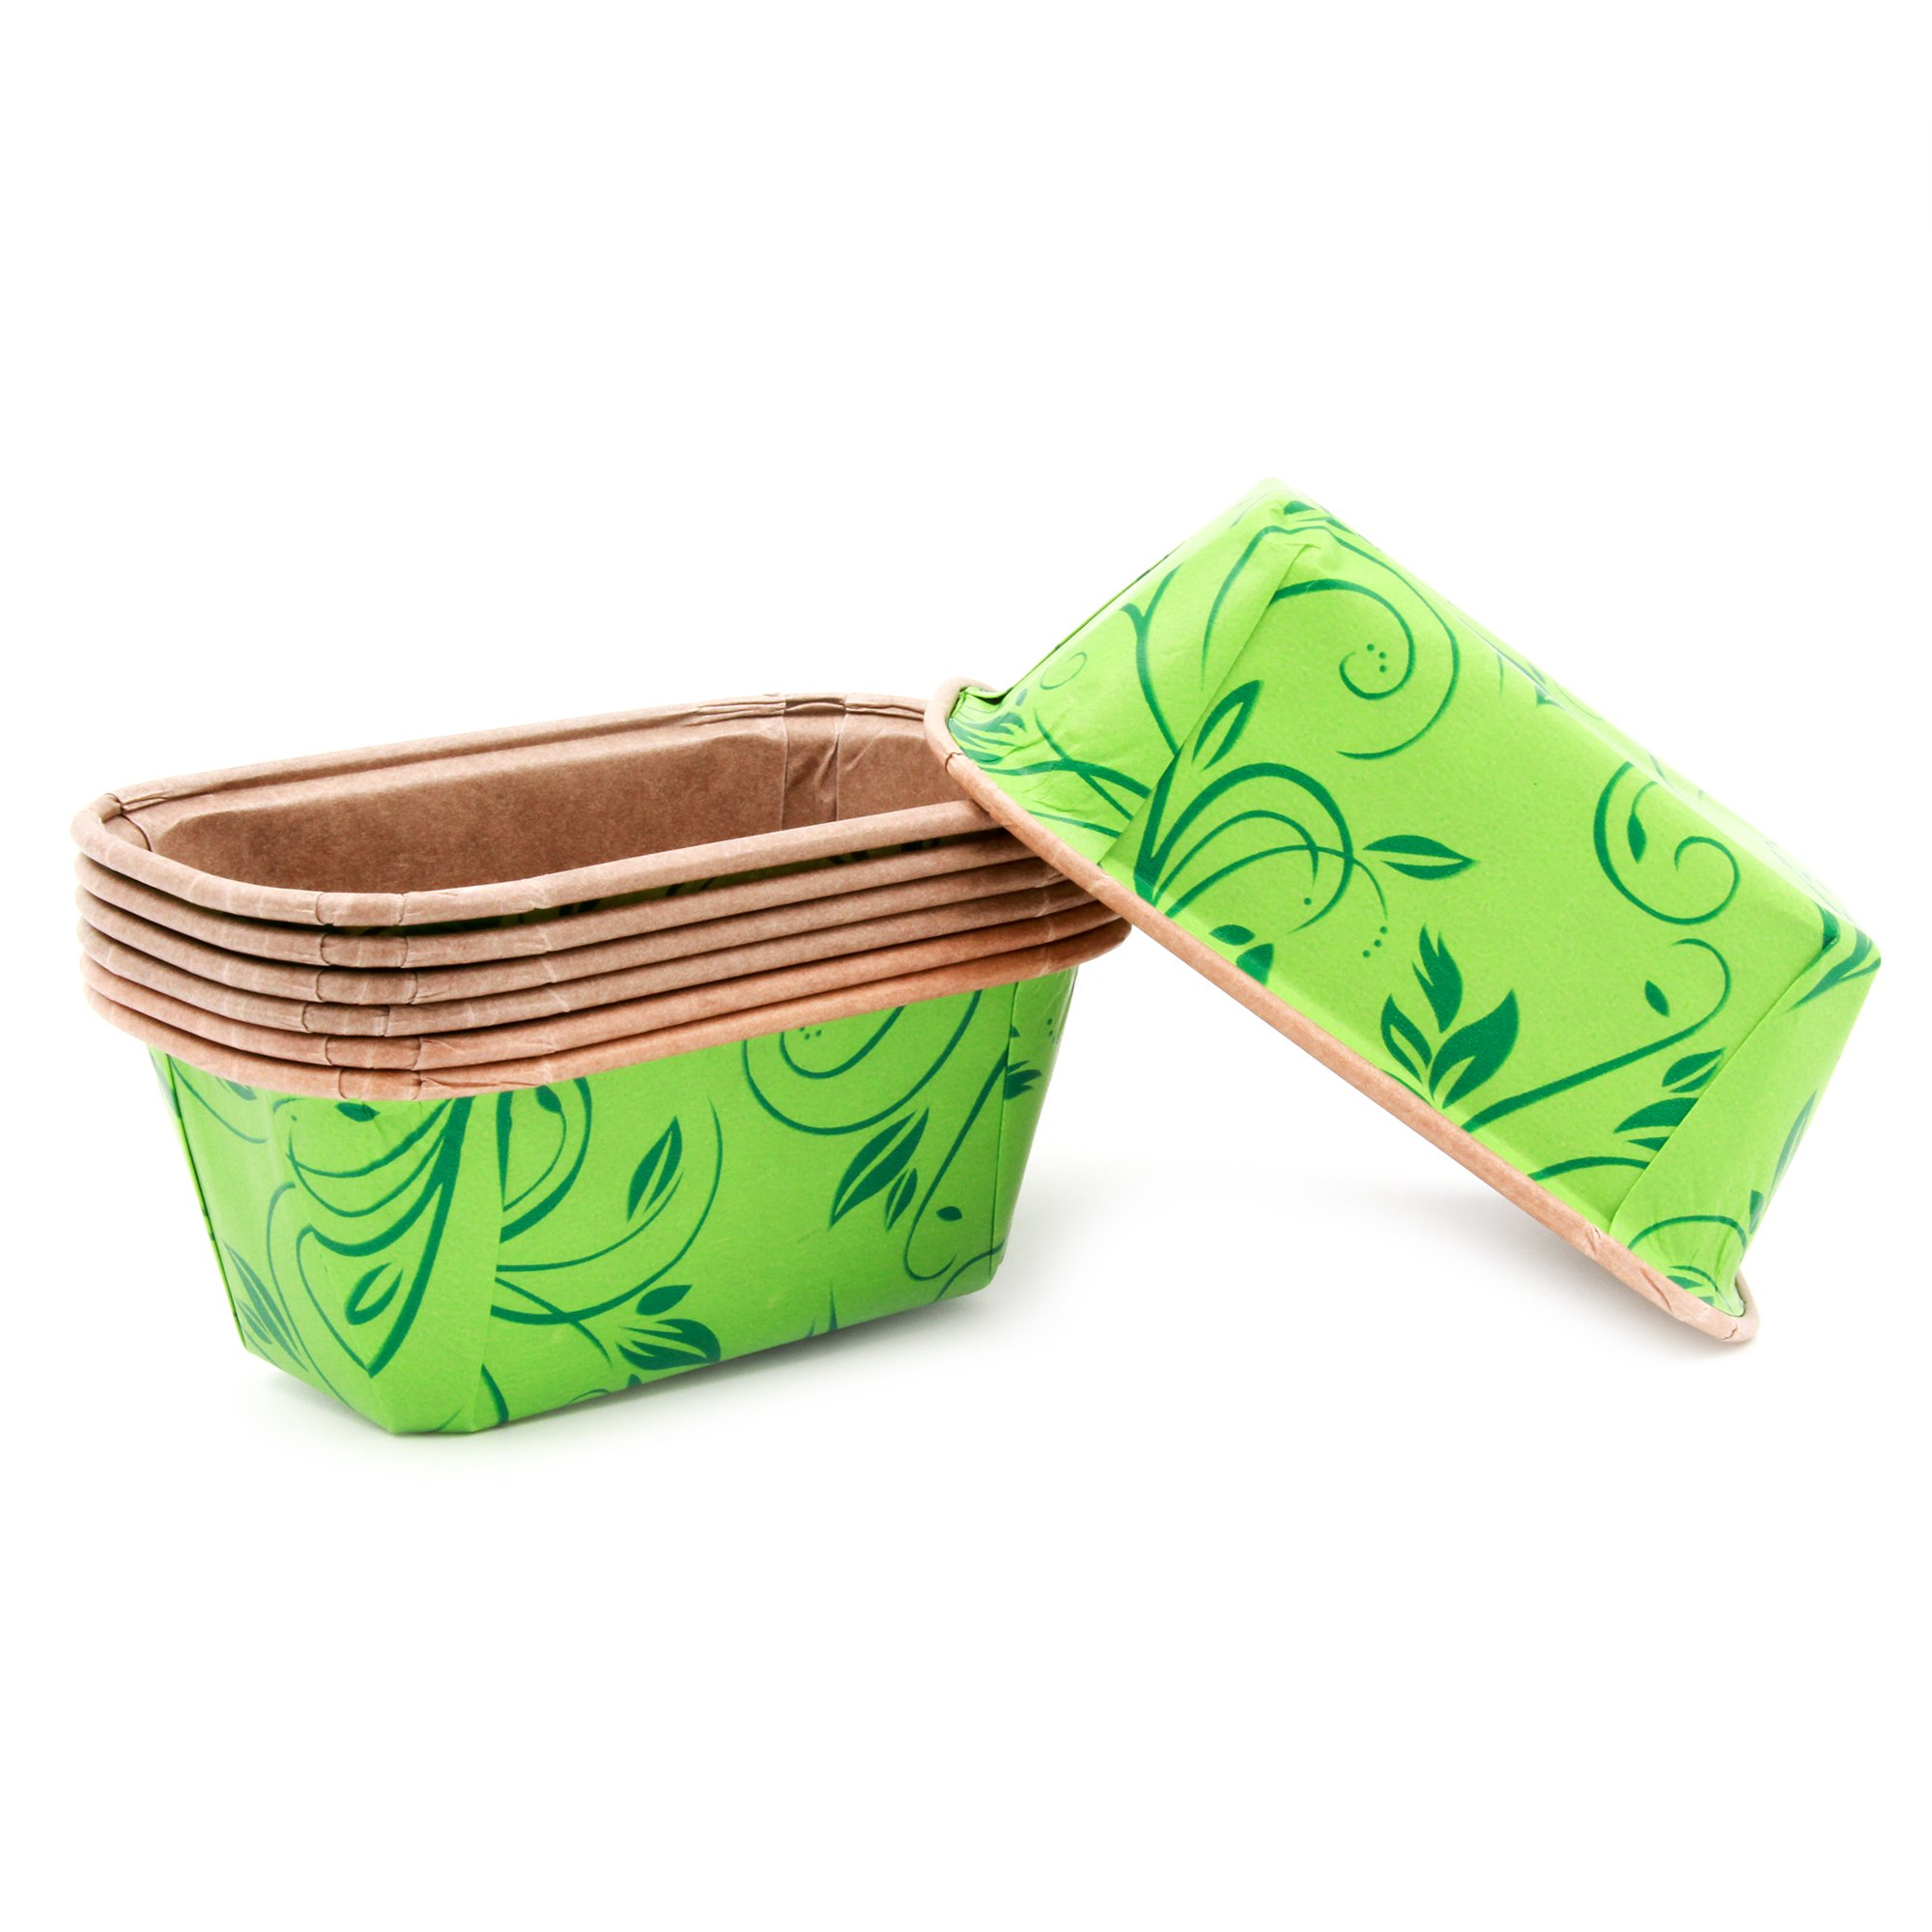 Premium Personal Mini Size Paper Baking Loaf Pan, Perfect for Chocolate Cake, Banana Bread Green Set of 30 - by EcoBake by Ecobake